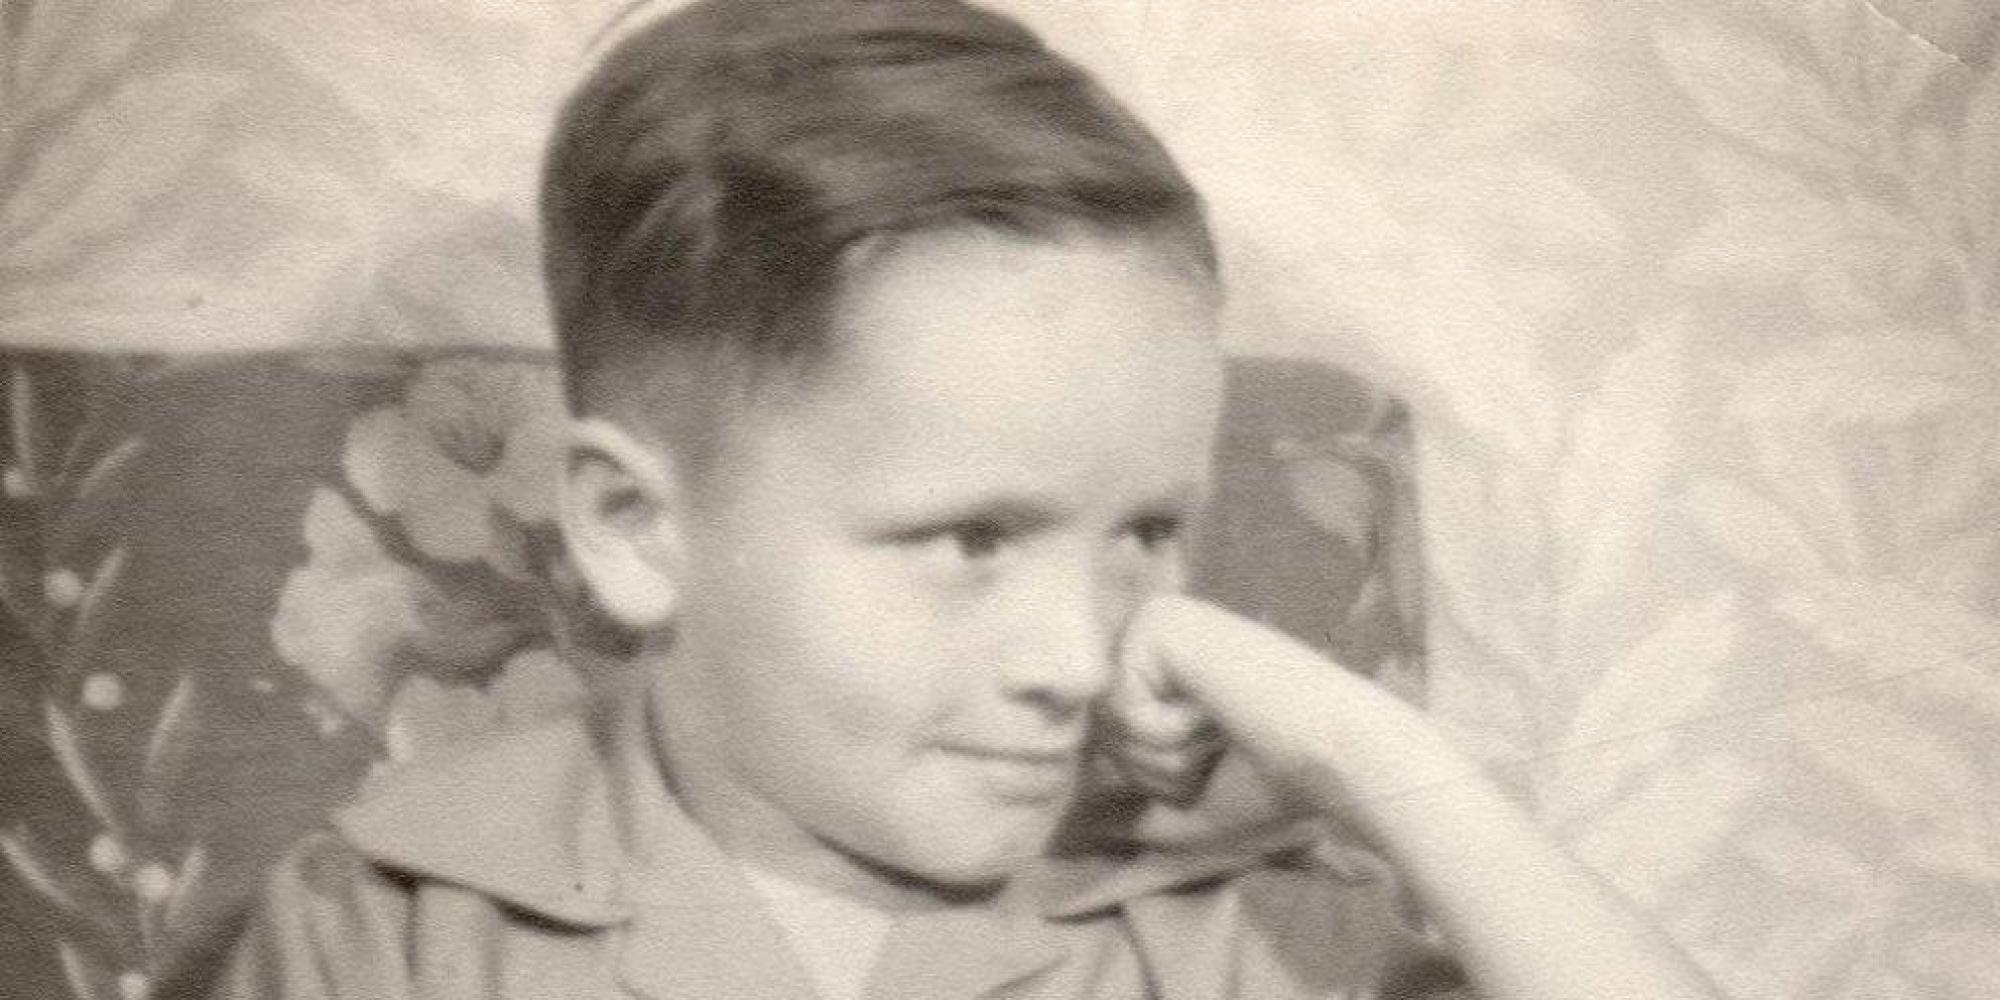 charles manson pictures show killer during his youth  photos